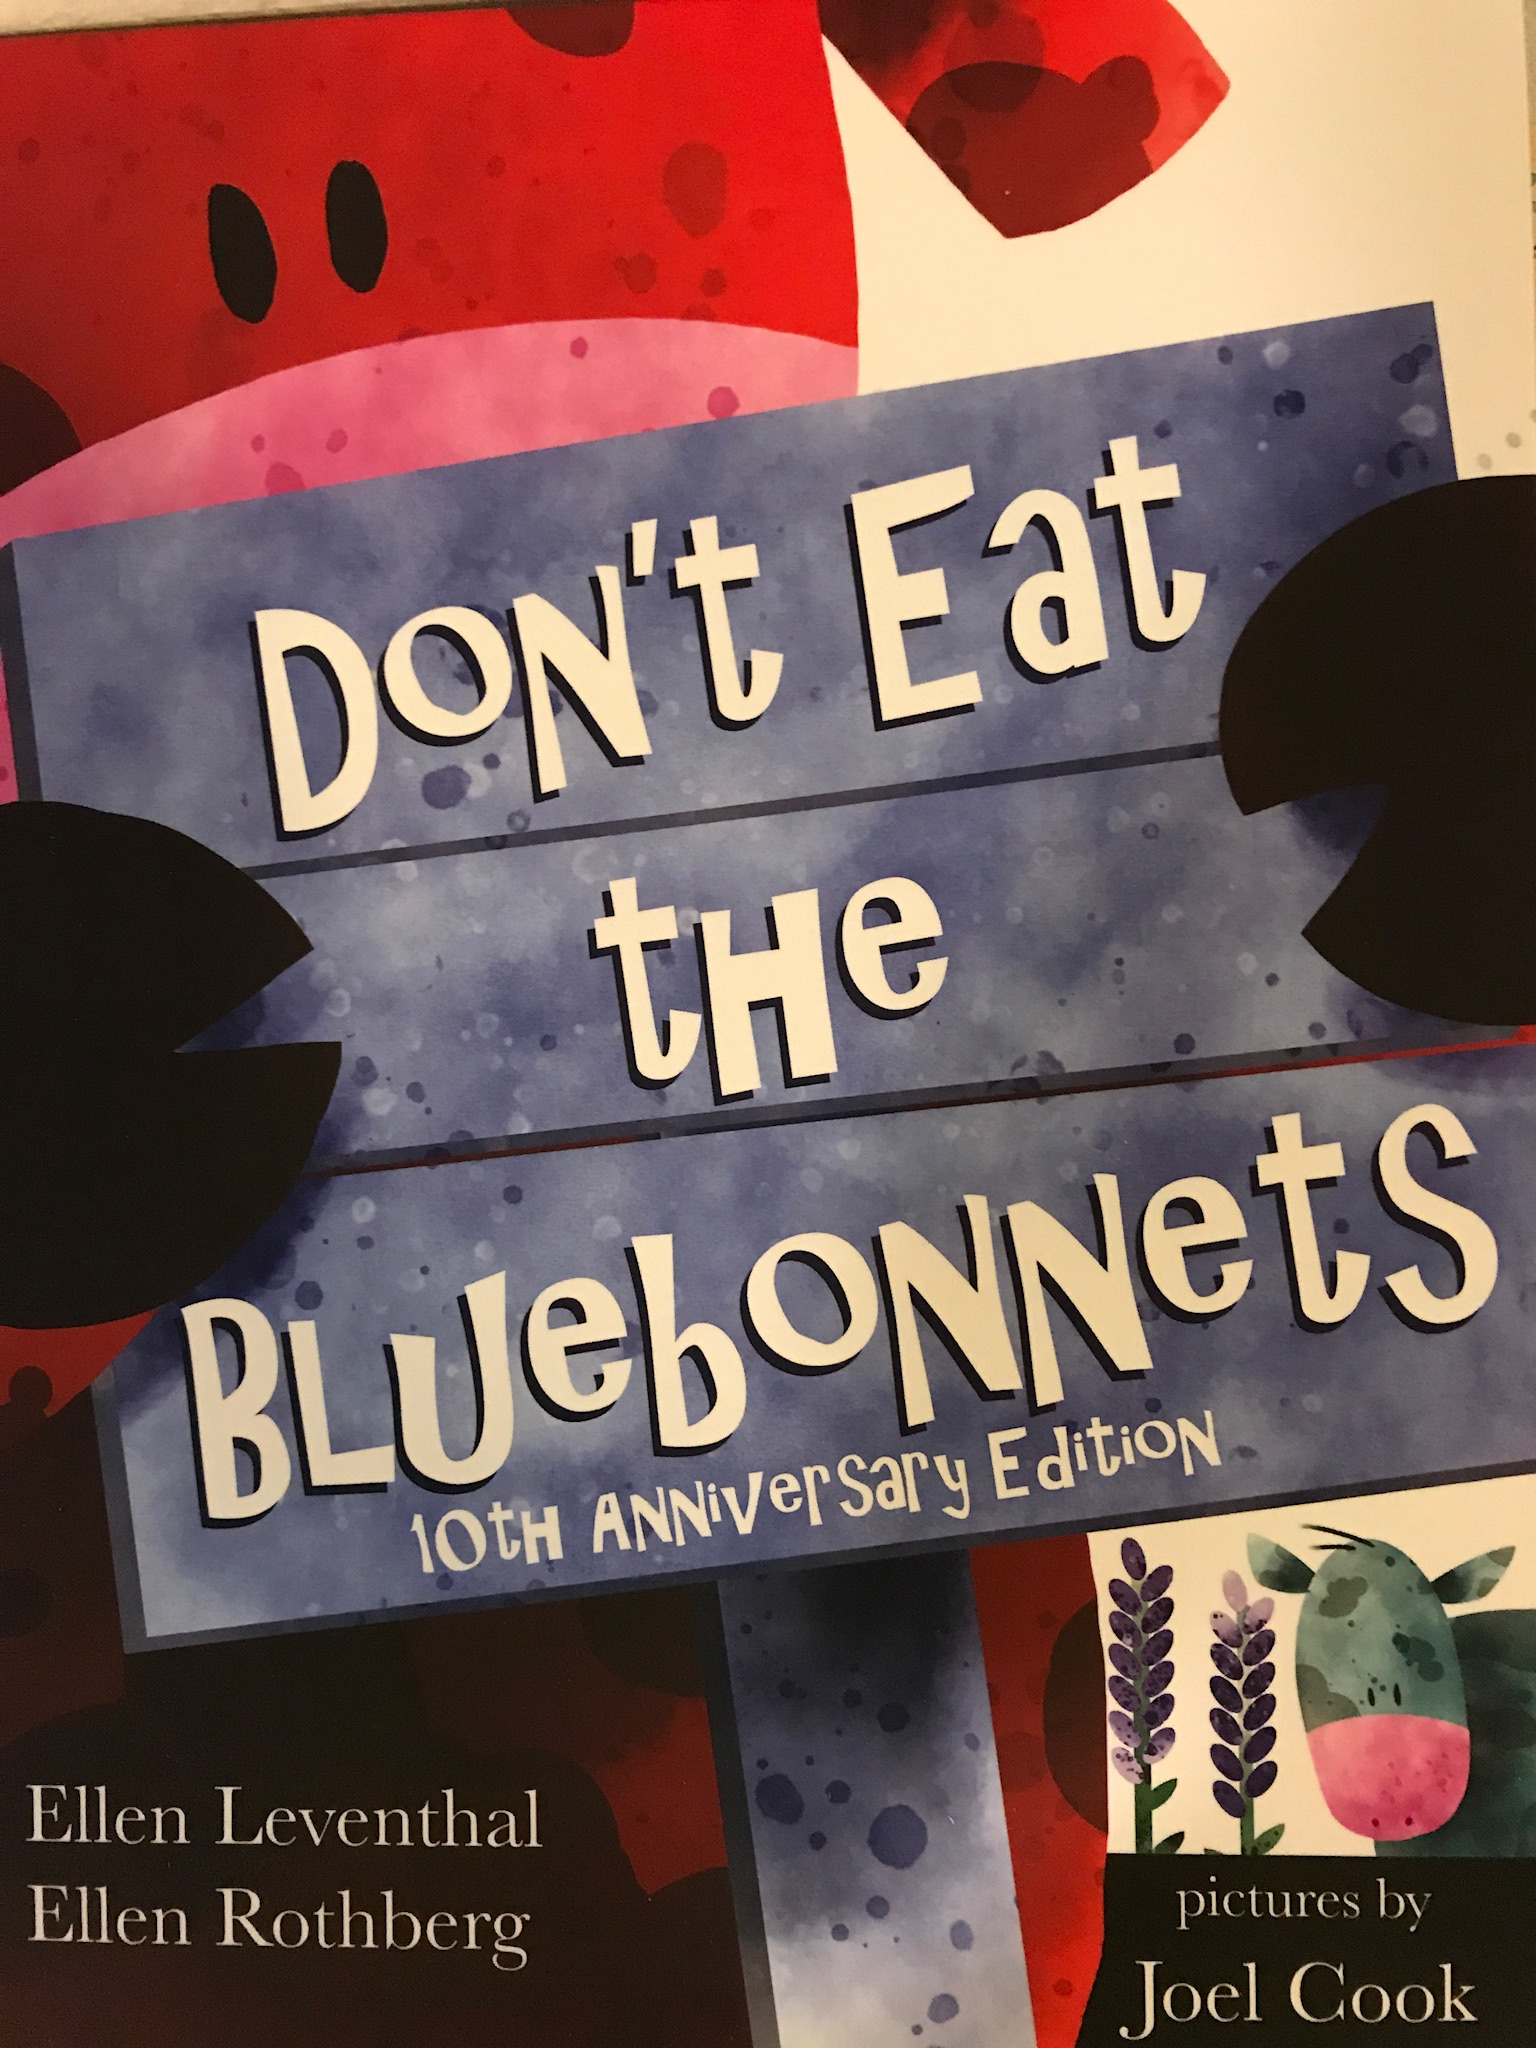 Dont Eat the Bluebonnets by Ellen Leventhal